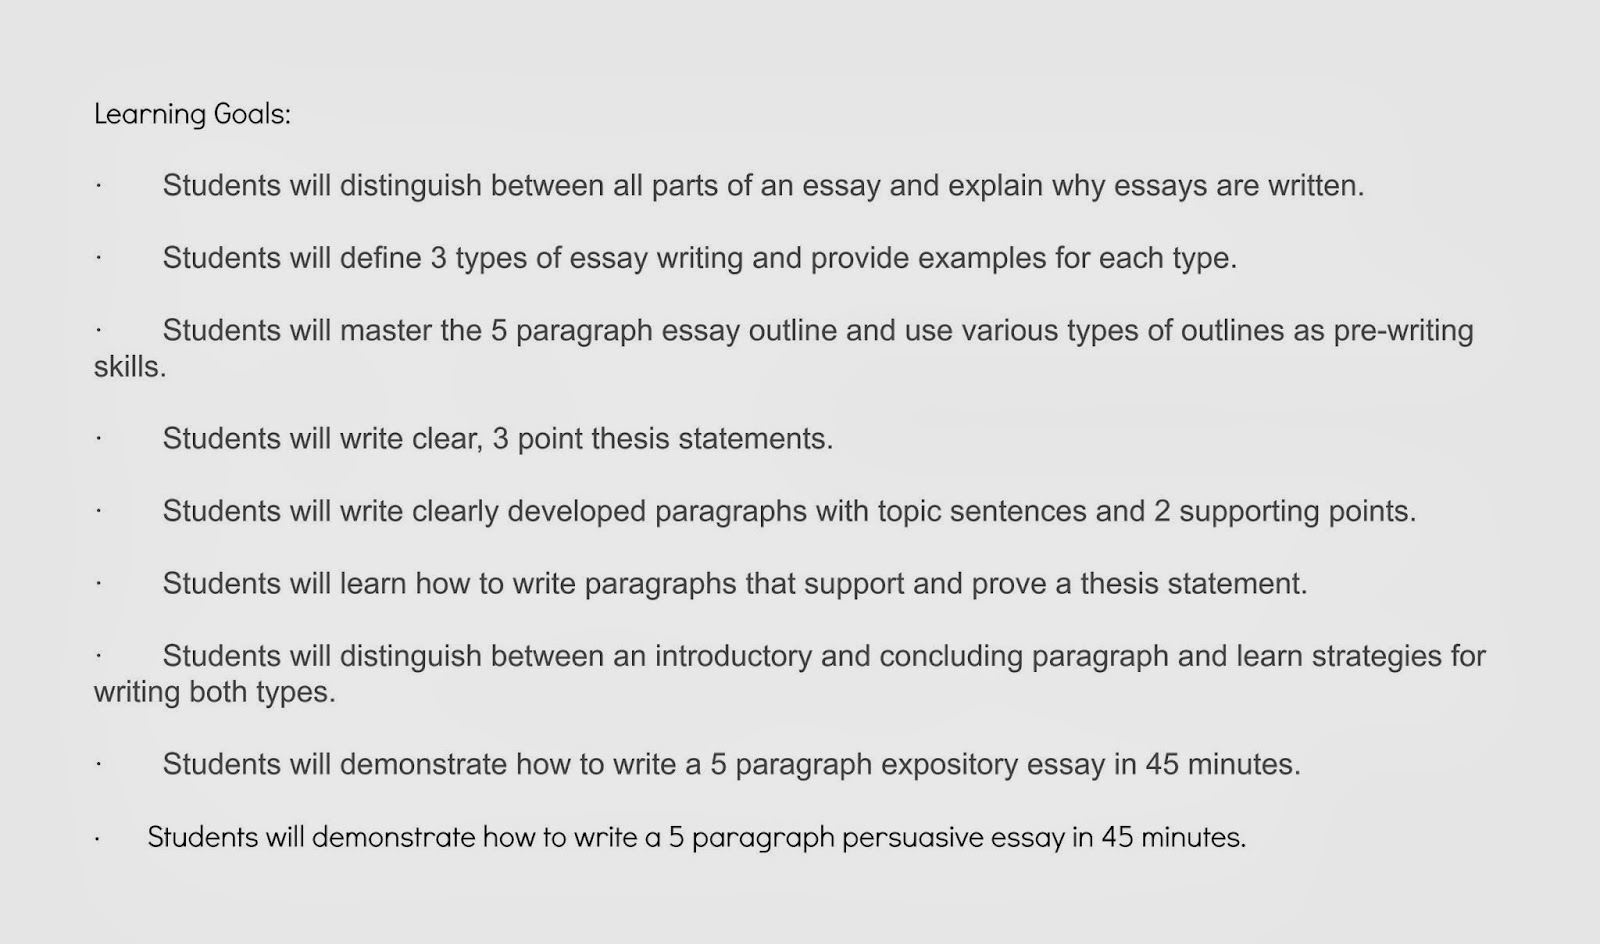 easy essays com easy essays com easy essay oglasi easy essay adventures jude bridgeway academy easy essay writing our experience